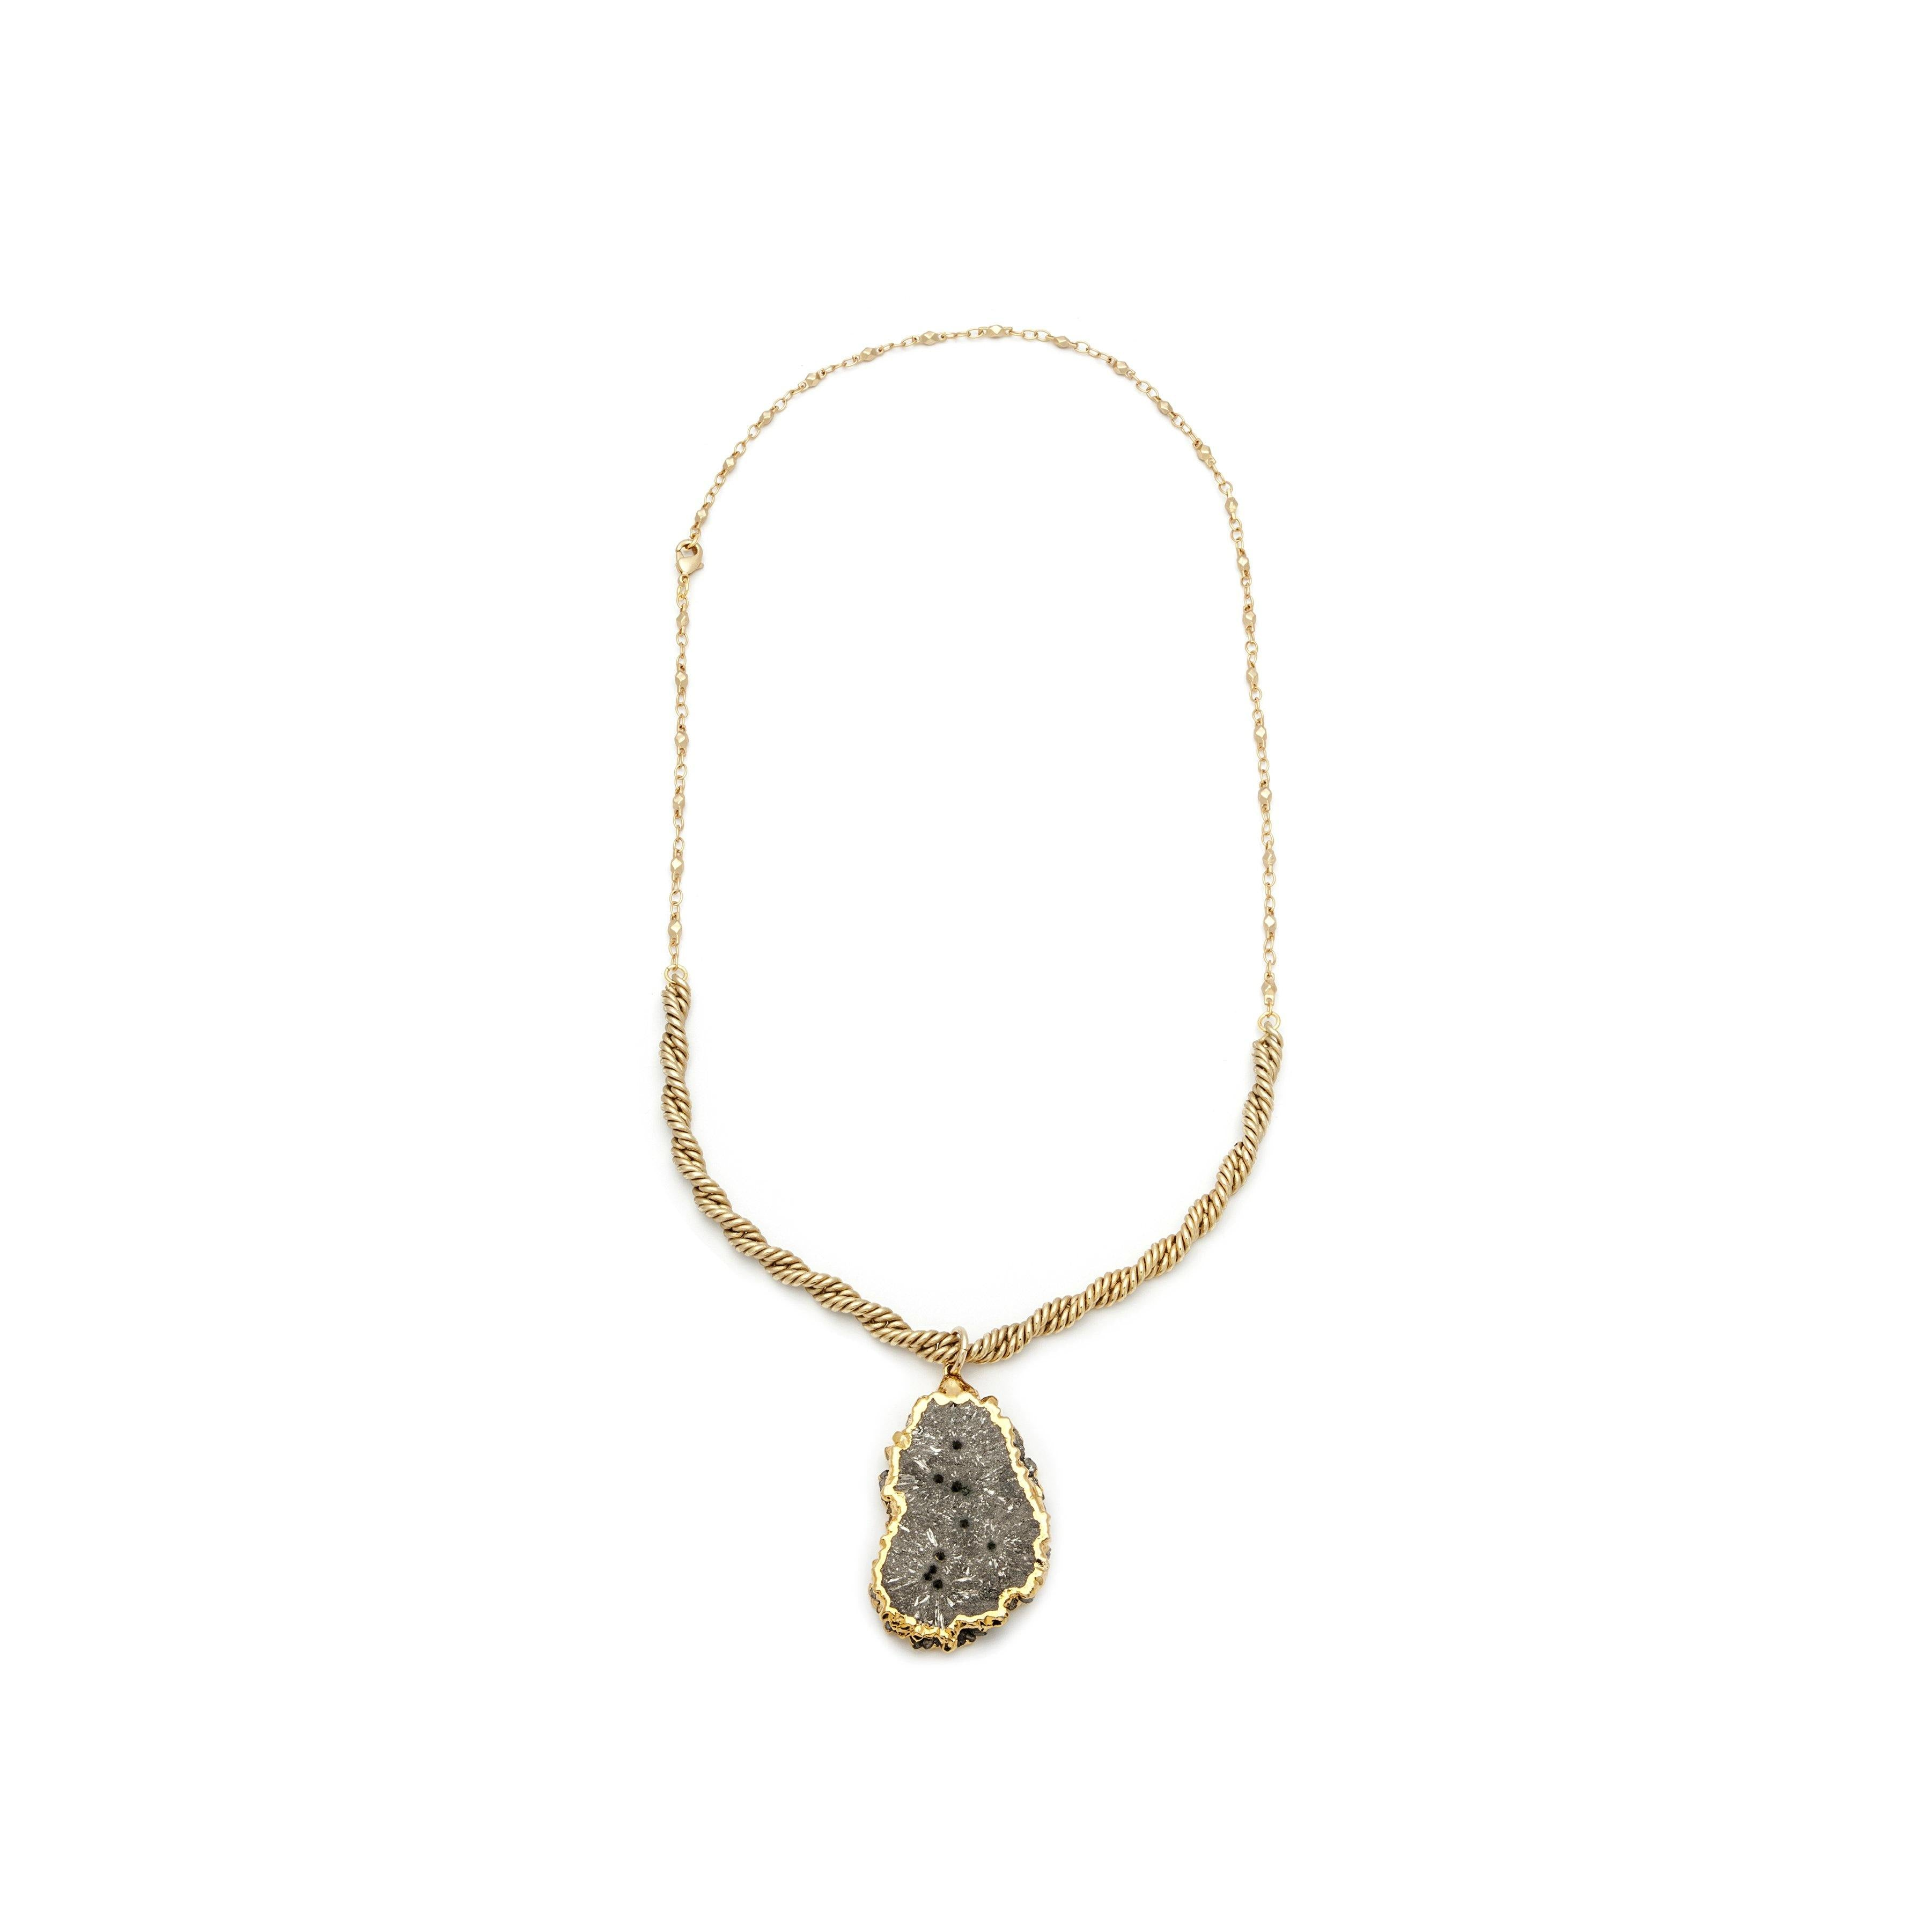 Double-Sided Pyrite Pendant Necklace - Irit Sorokin Designs Canadian handmade jewelry